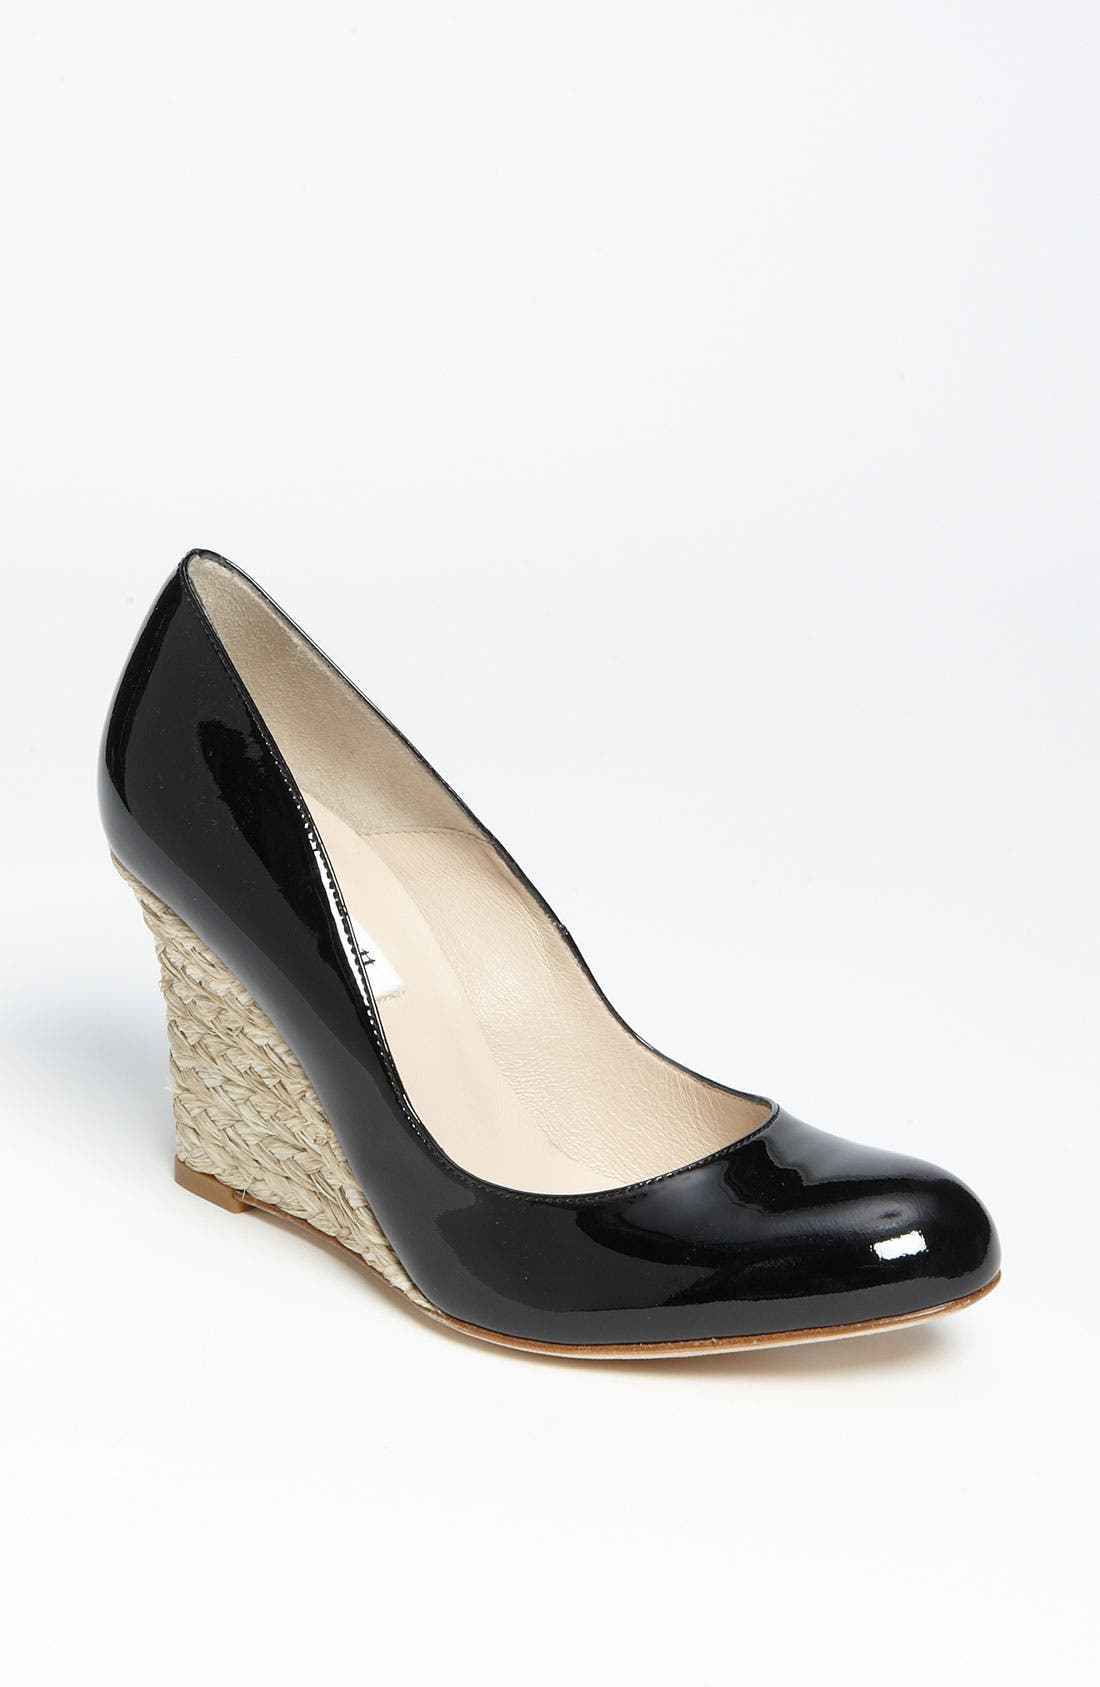 Alternate Image 1 Selected - L.K. Bennett 'Maddox' Wedge Pump